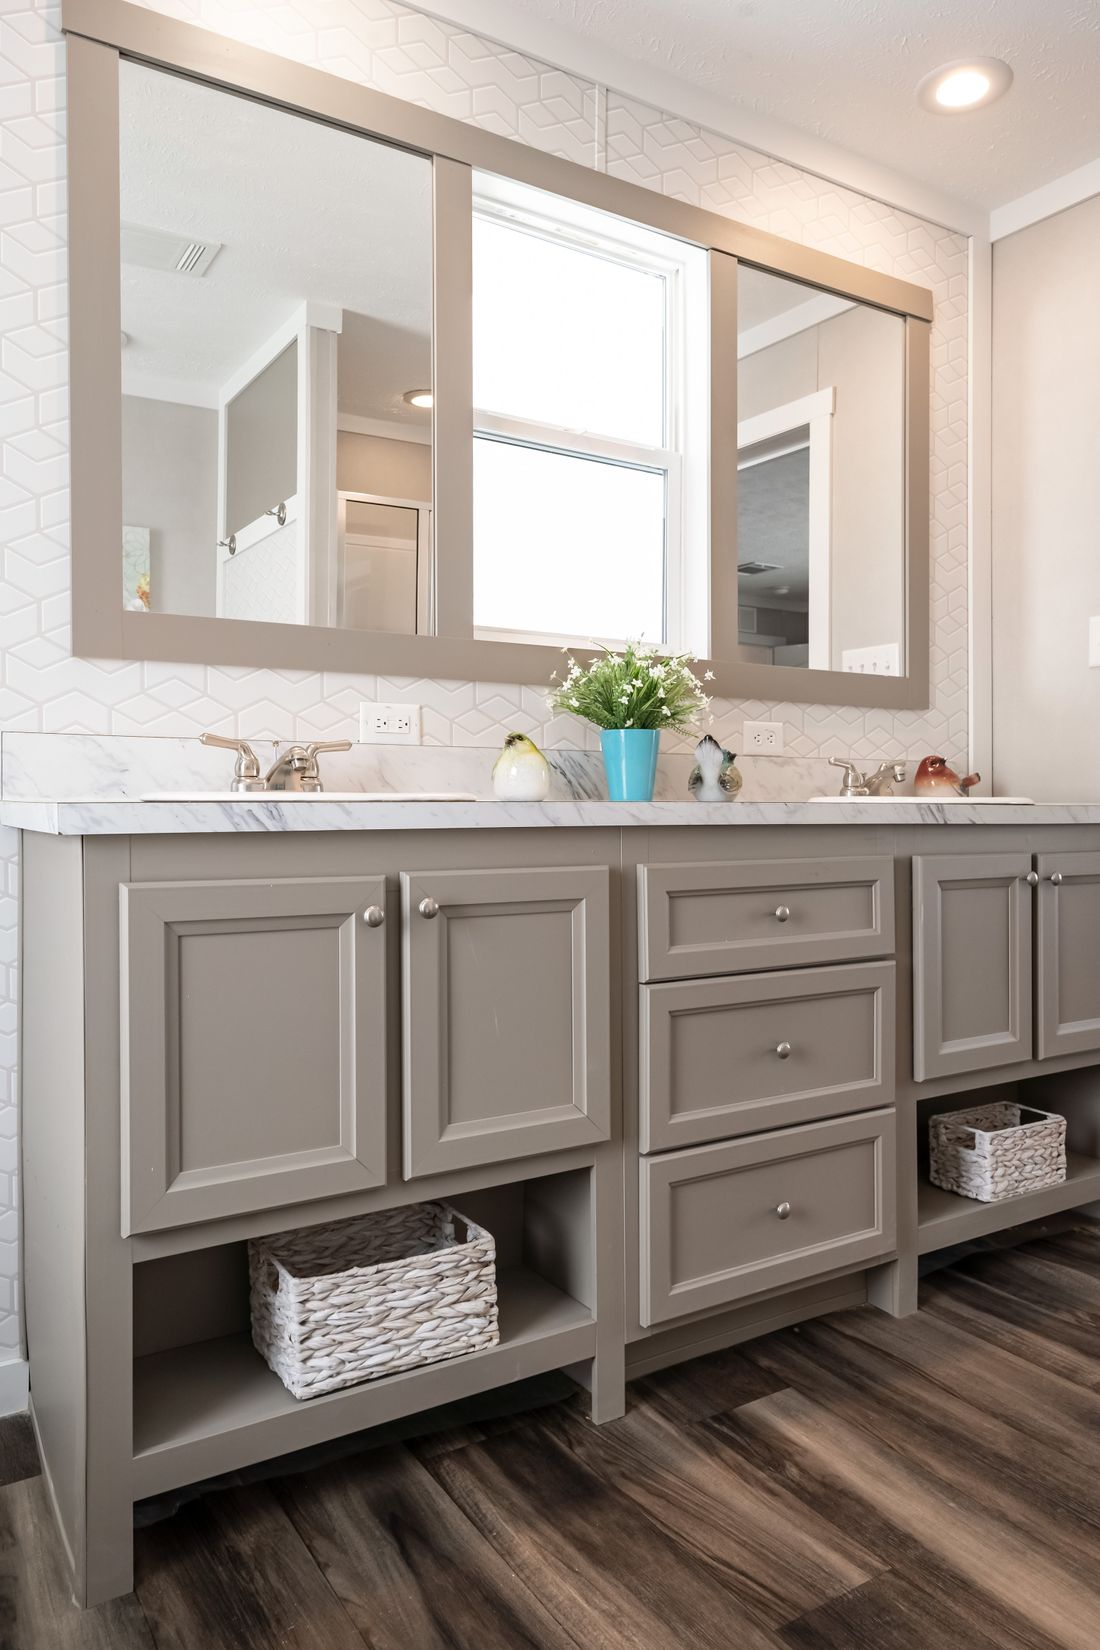 The THE KINGSLAND Master Bathroom. This Manufactured Mobile Home features 3 bedrooms and 2 baths.